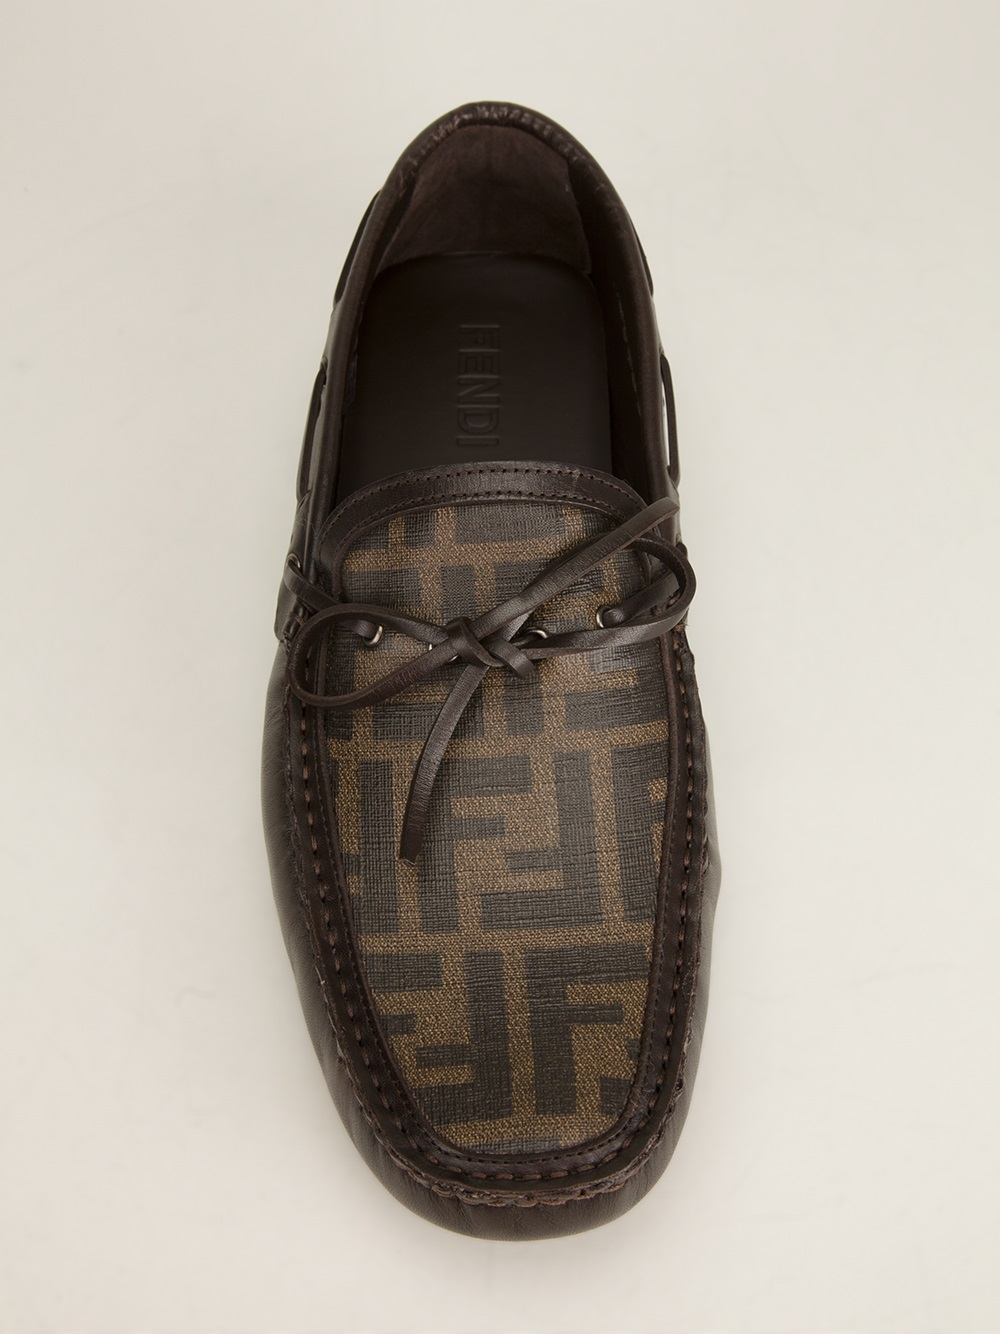 Fendi Bow Detail Driving Shoe In Brown For Men Lyst